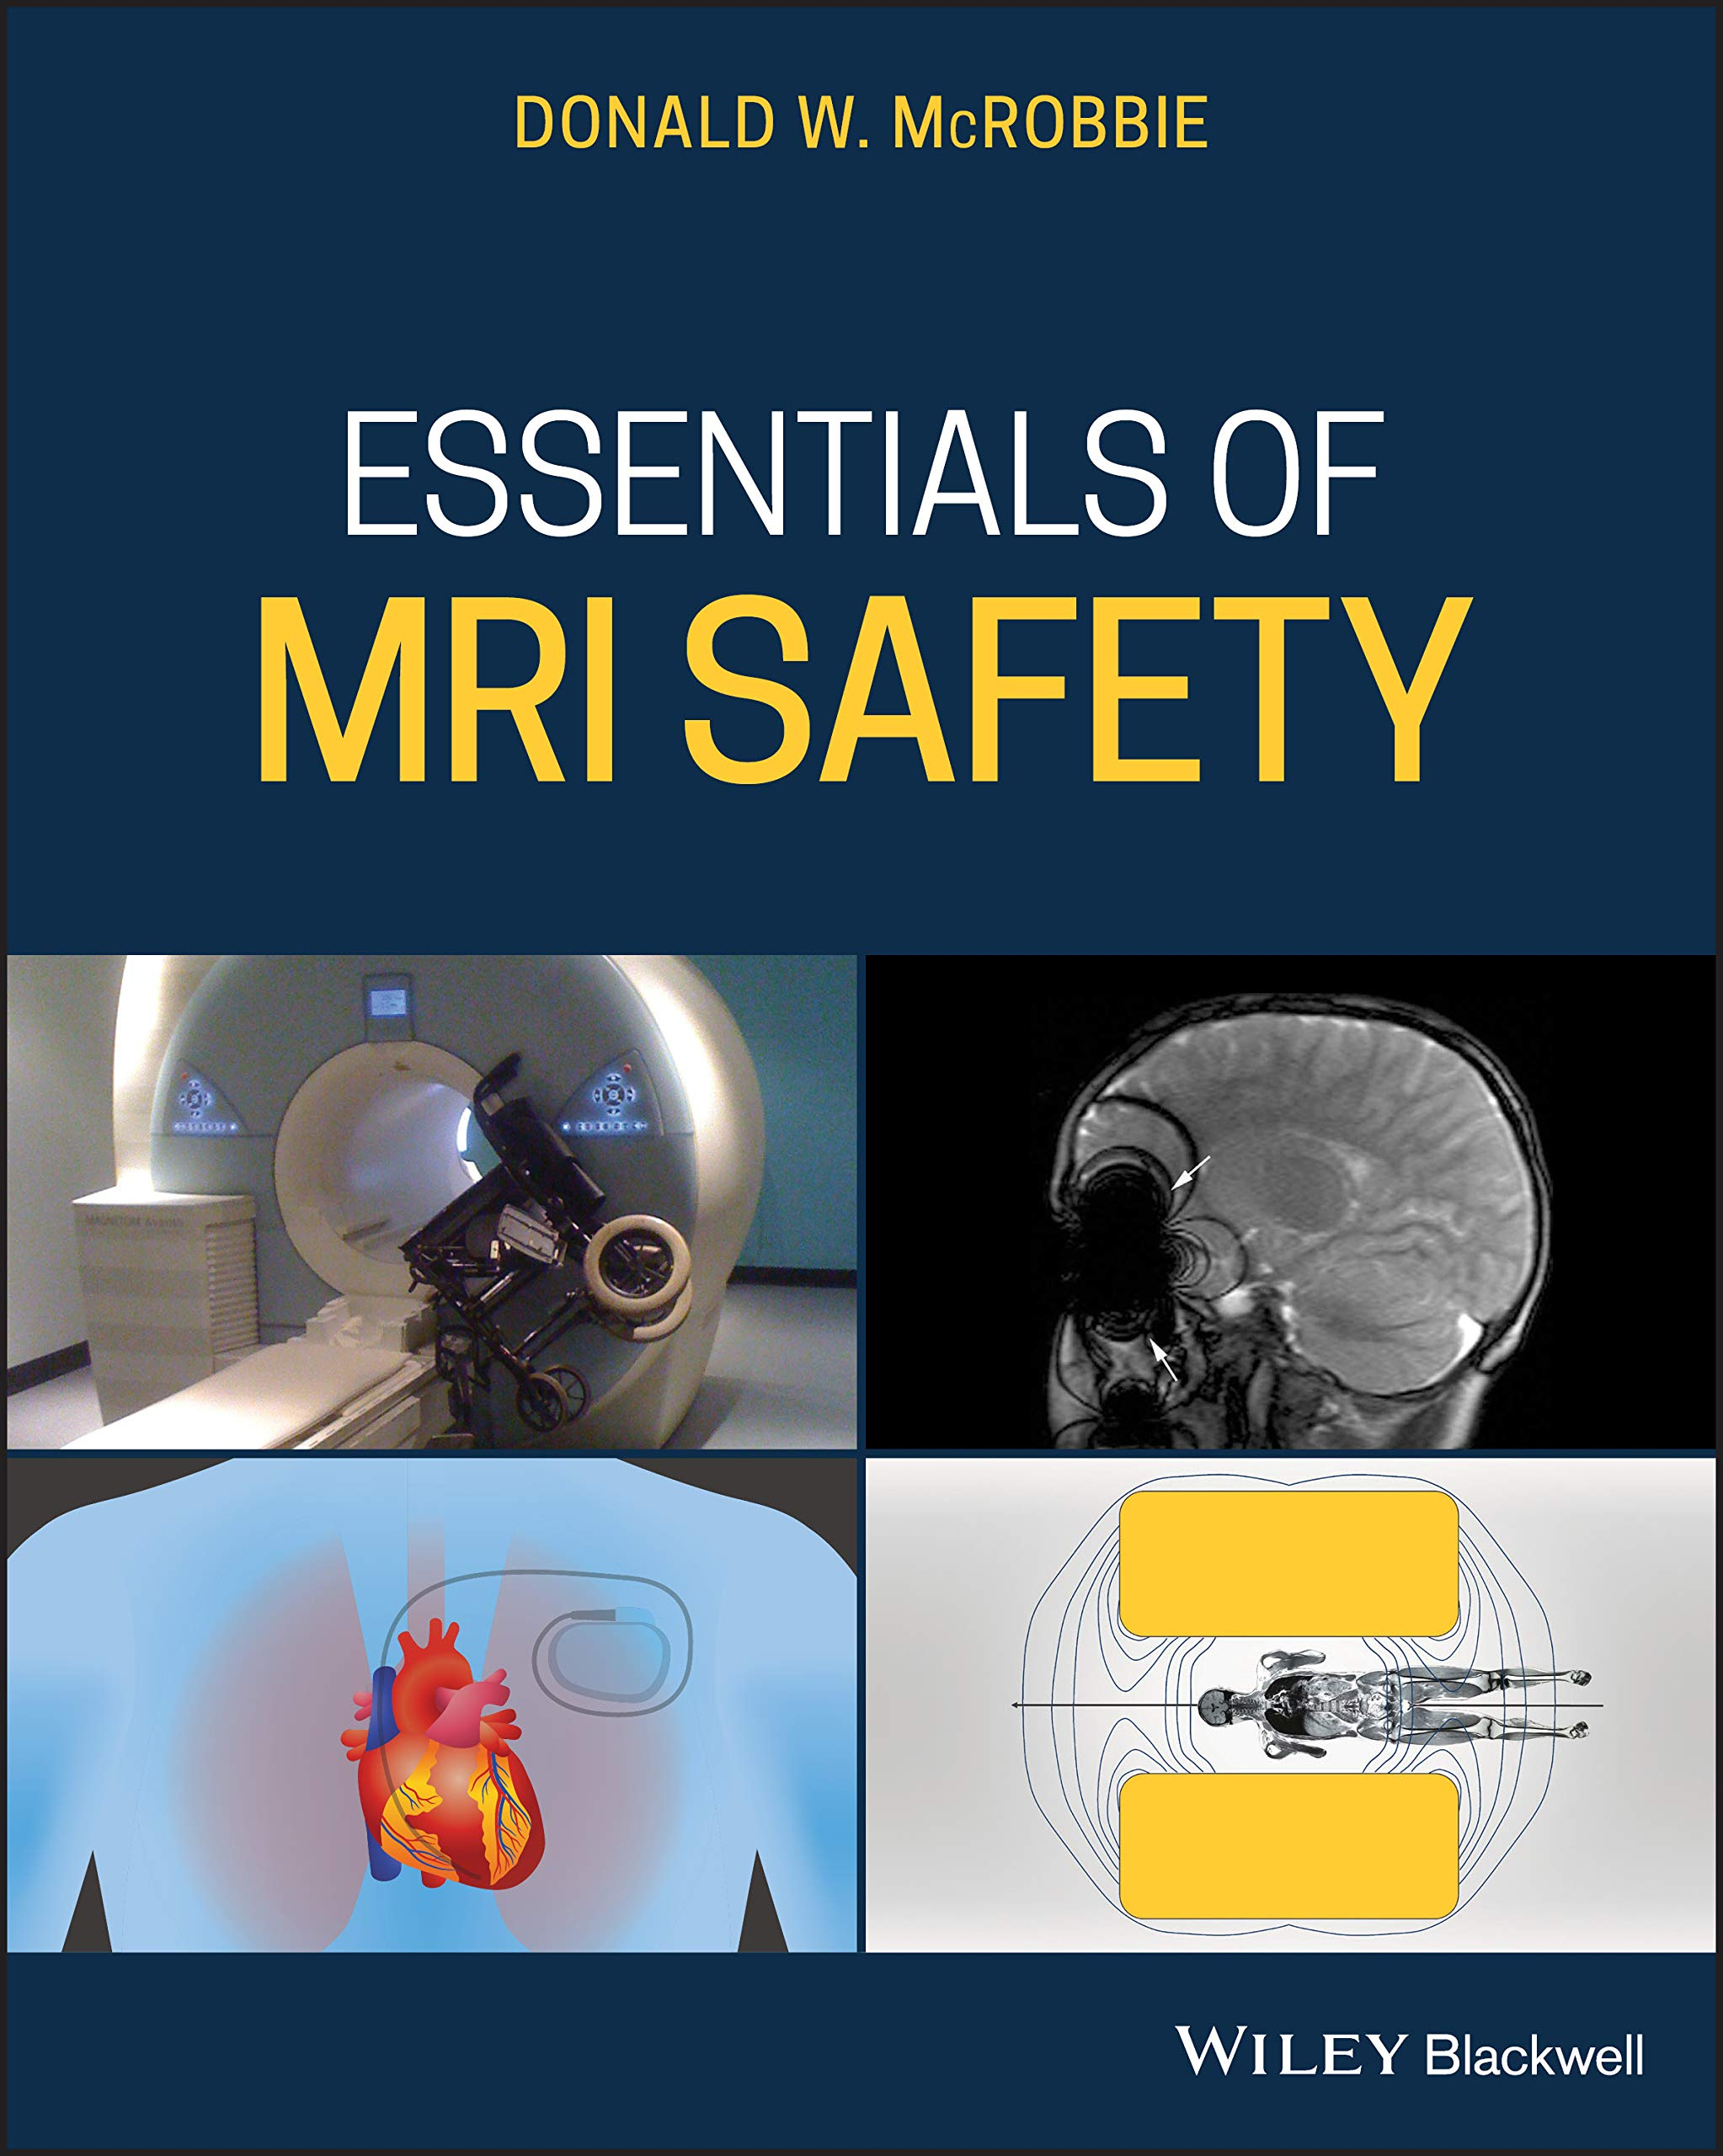 Image OfEssentials Of MRI Safety